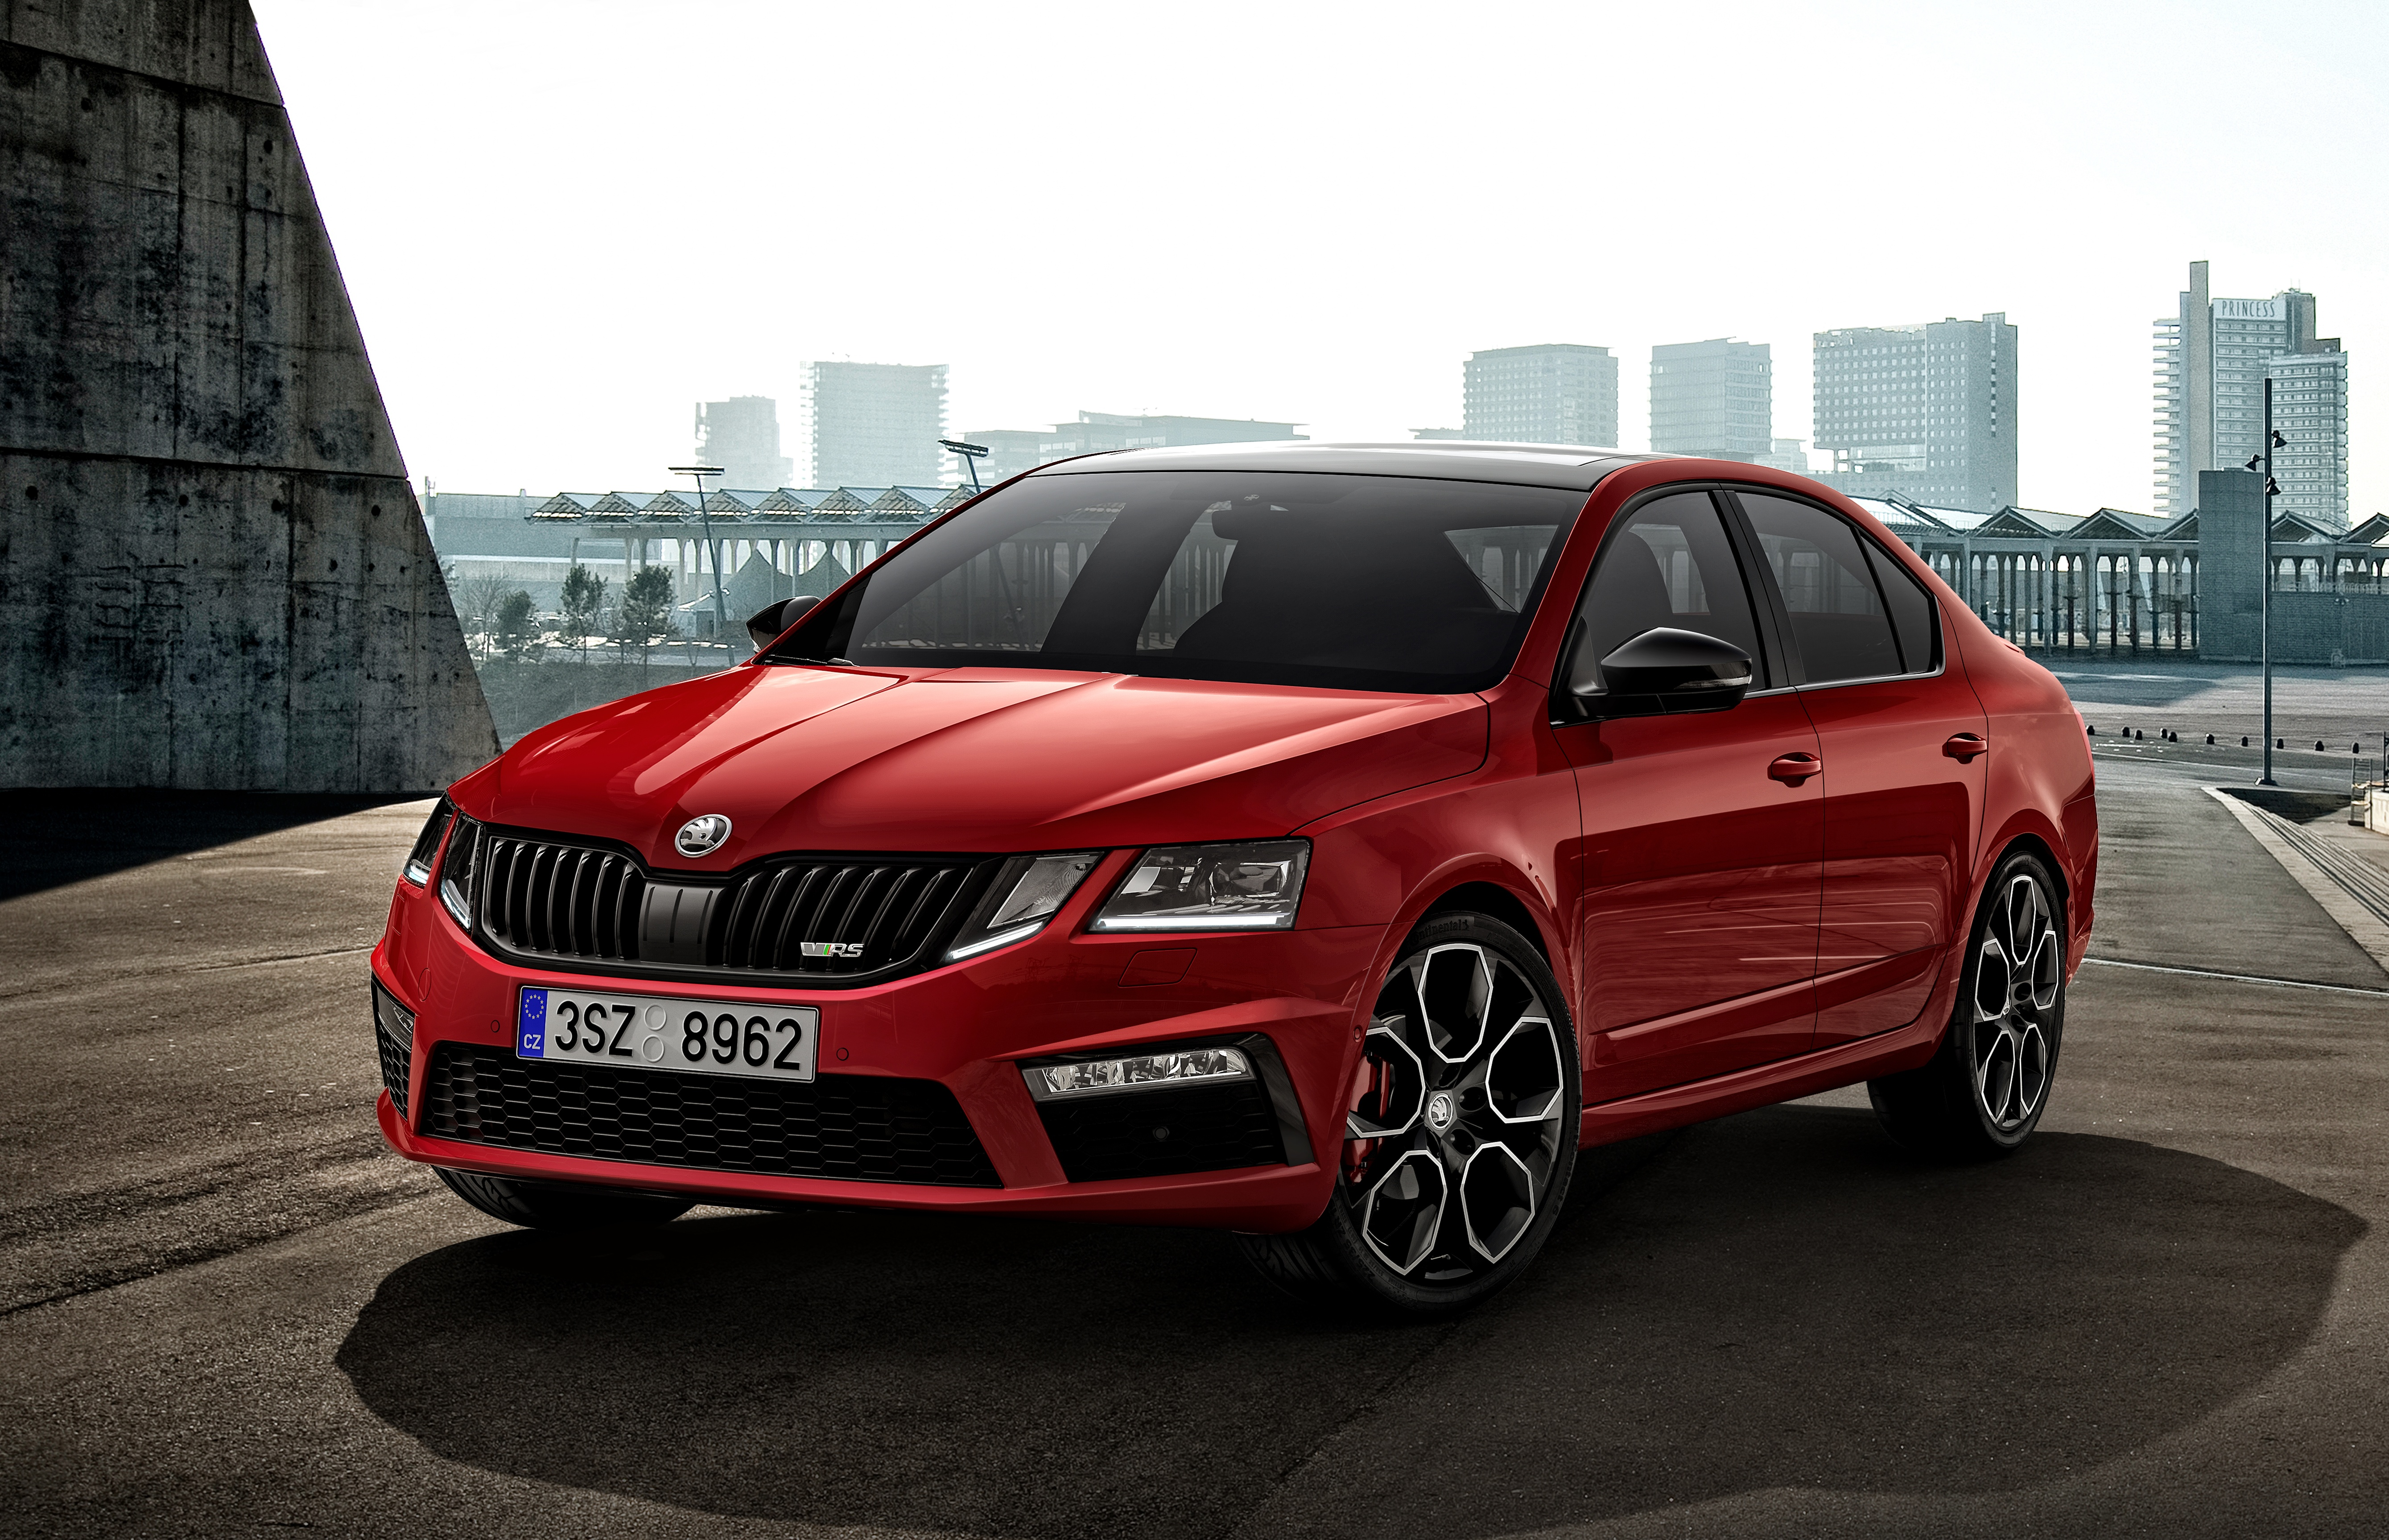 ŠKODA OCTAVIA RS 245 – premiere of the high-performance sportster new to  the model range